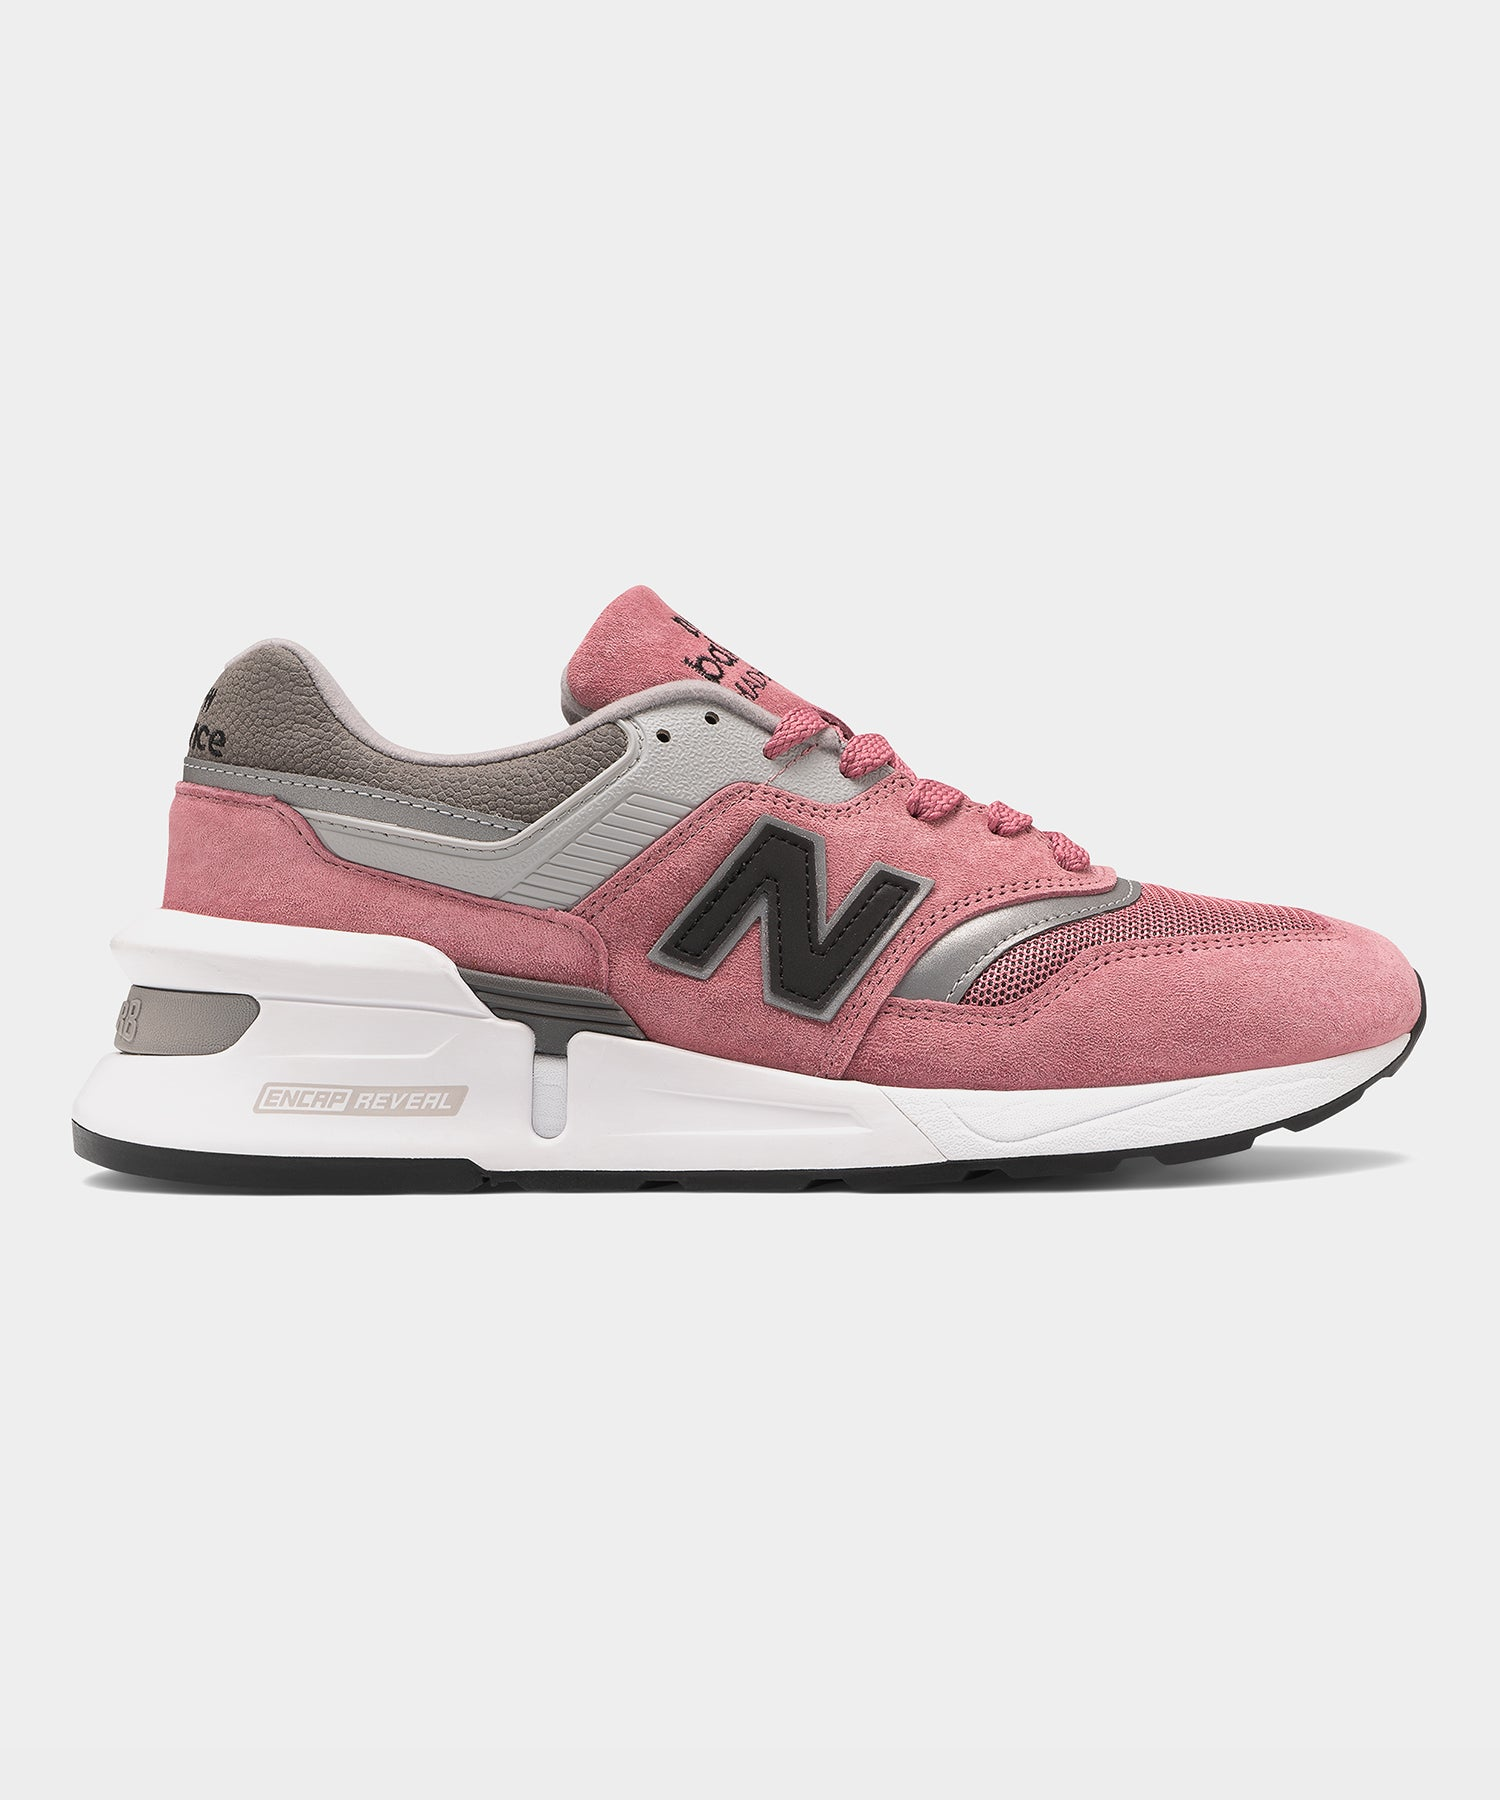 New Balance 997 Sport in Pink with Grey